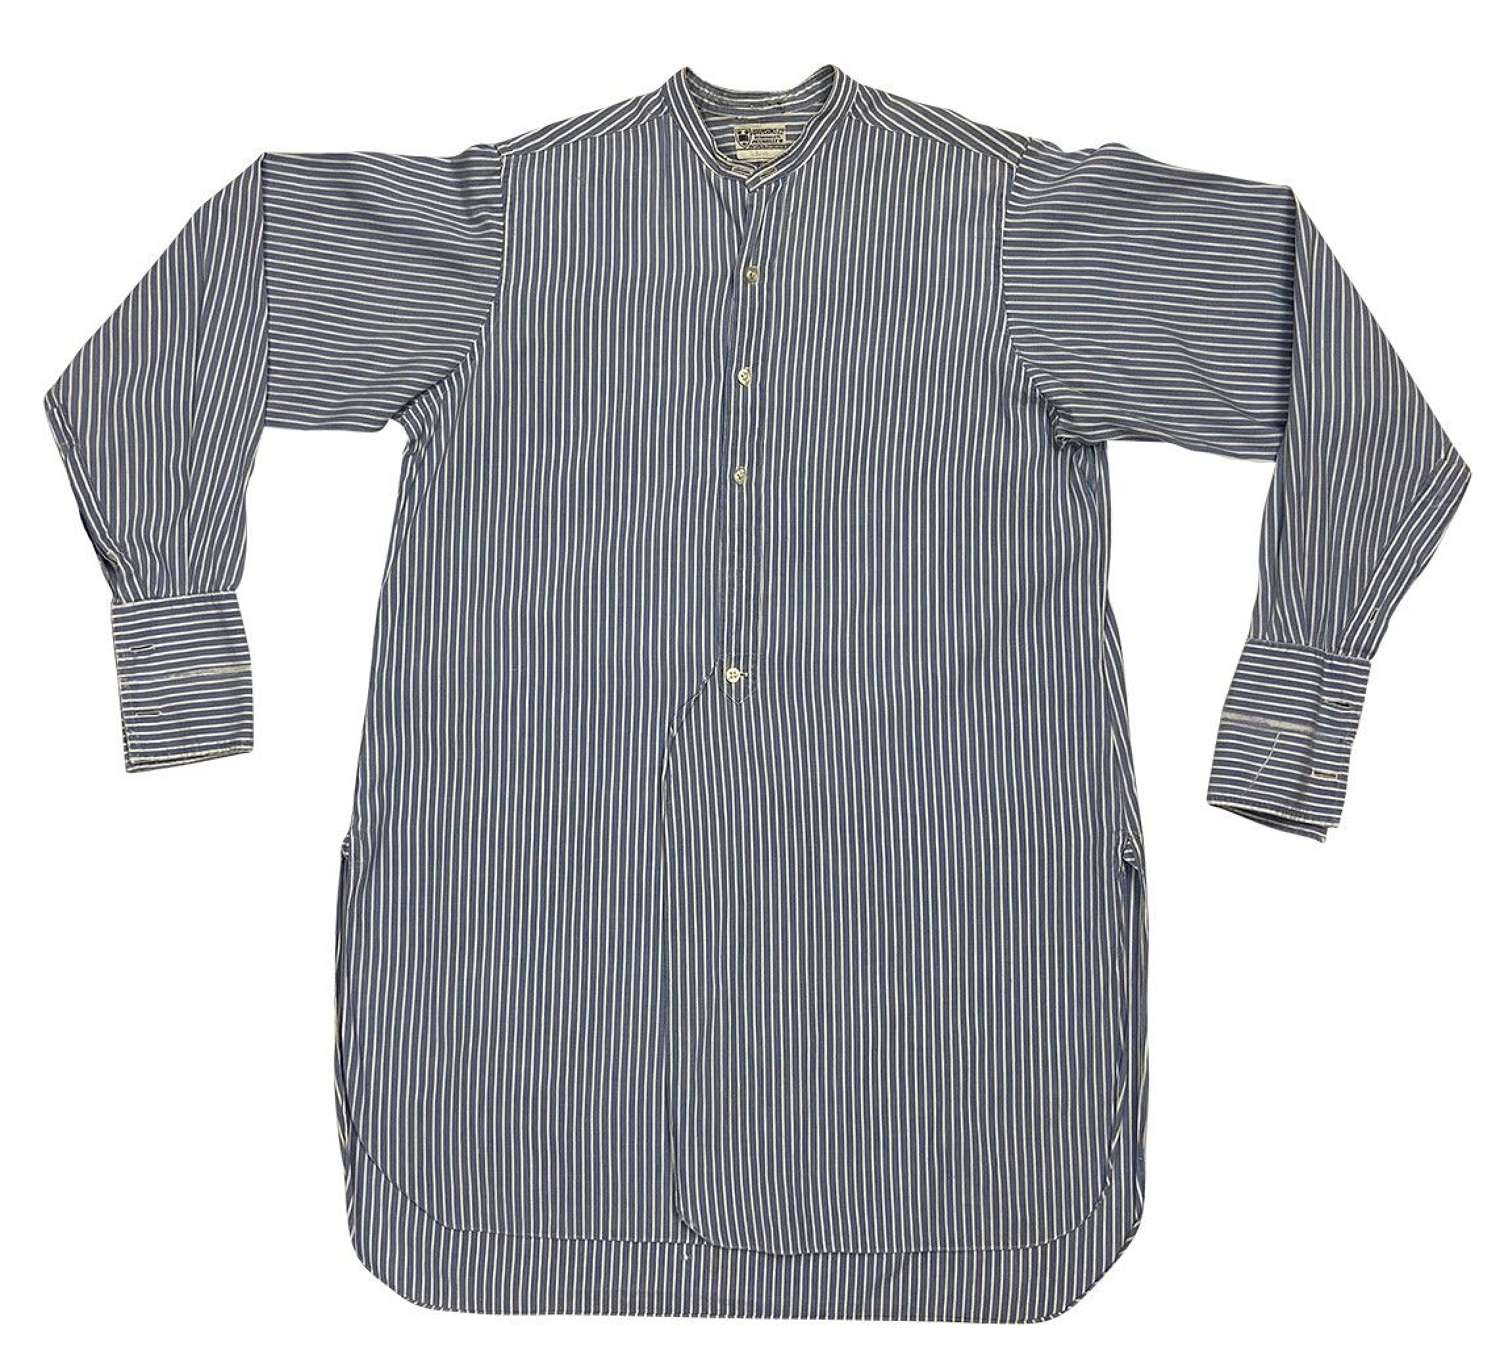 Original 1950s Blue and White Striped Collarless Shirt by 'Adamsons'